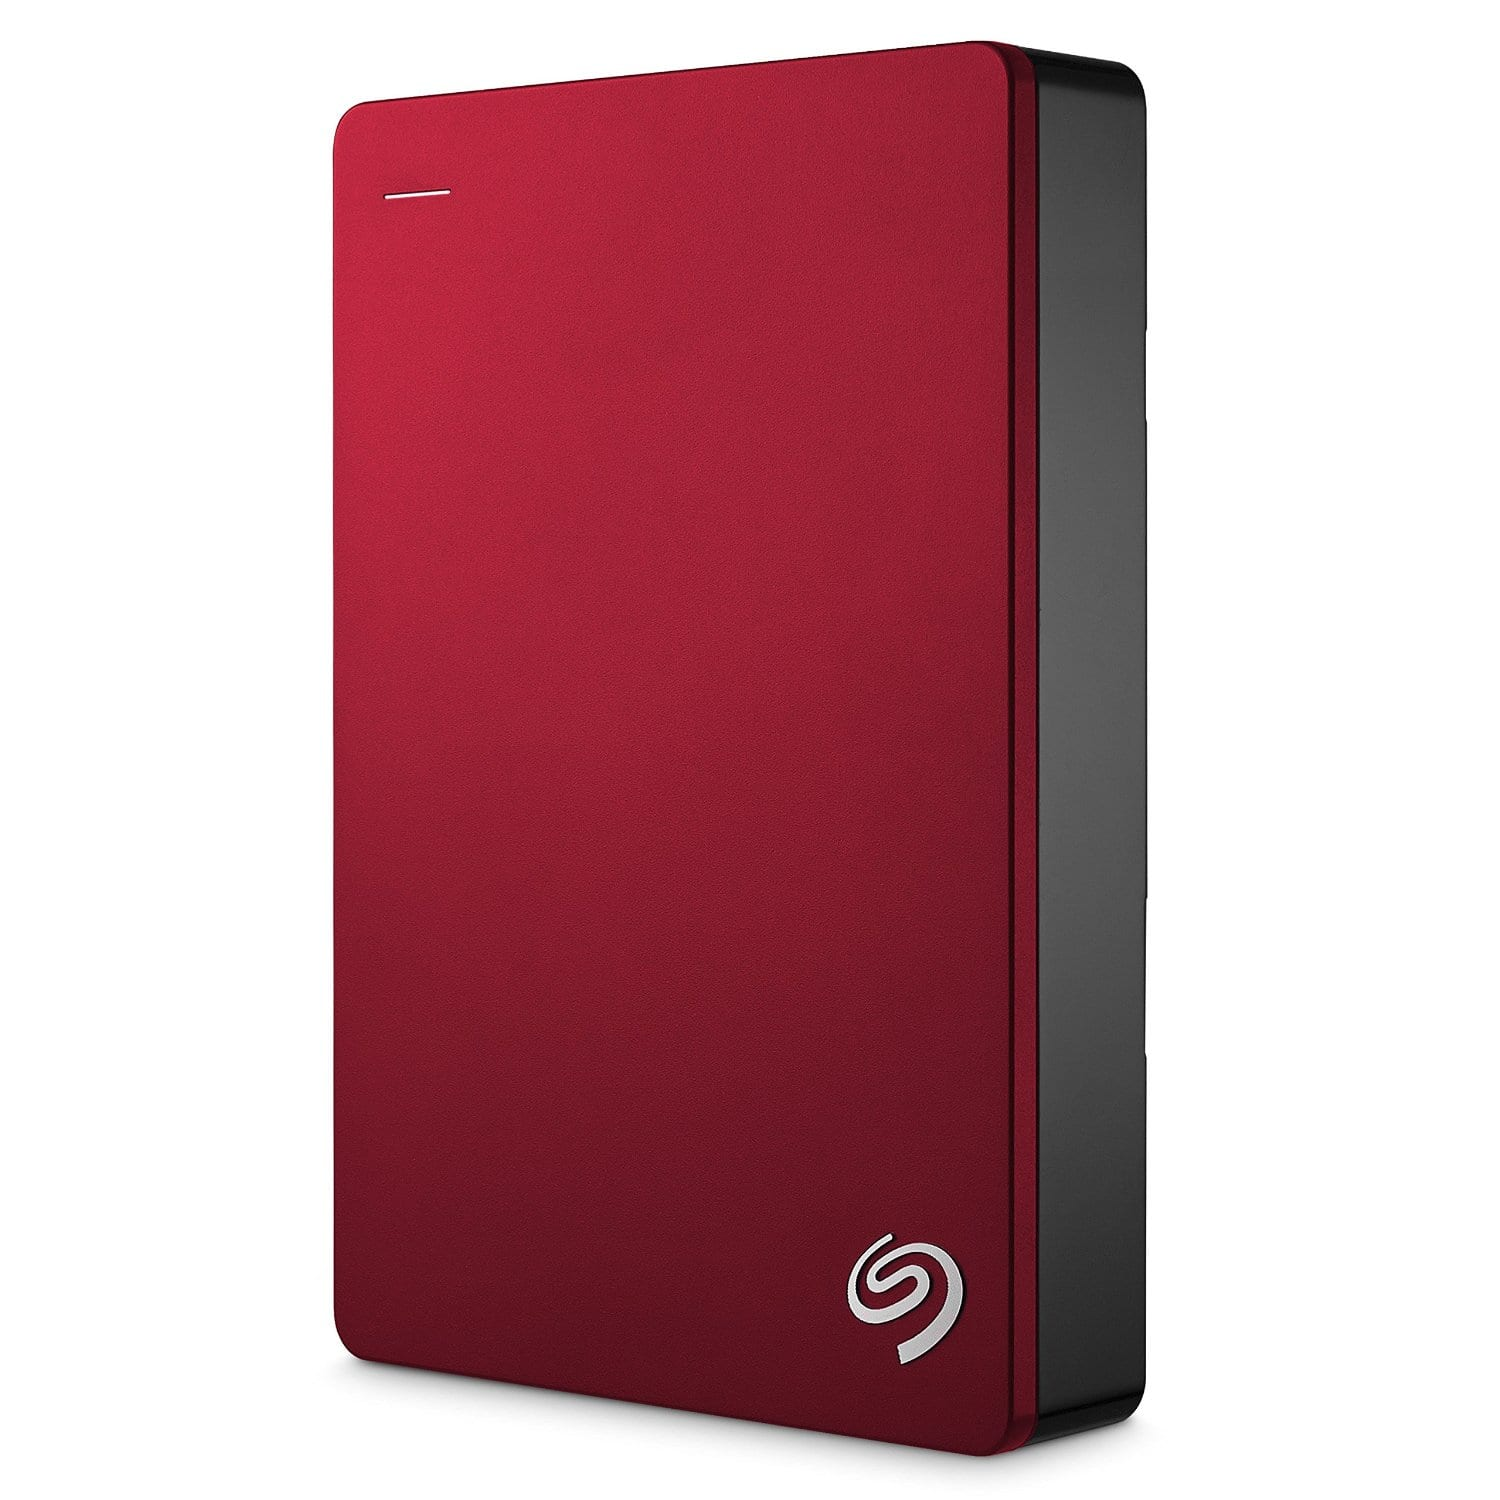 4TB Seagate Backup Plus Portable USB 3.0 External Hard Drive  $100 + Free Shipping